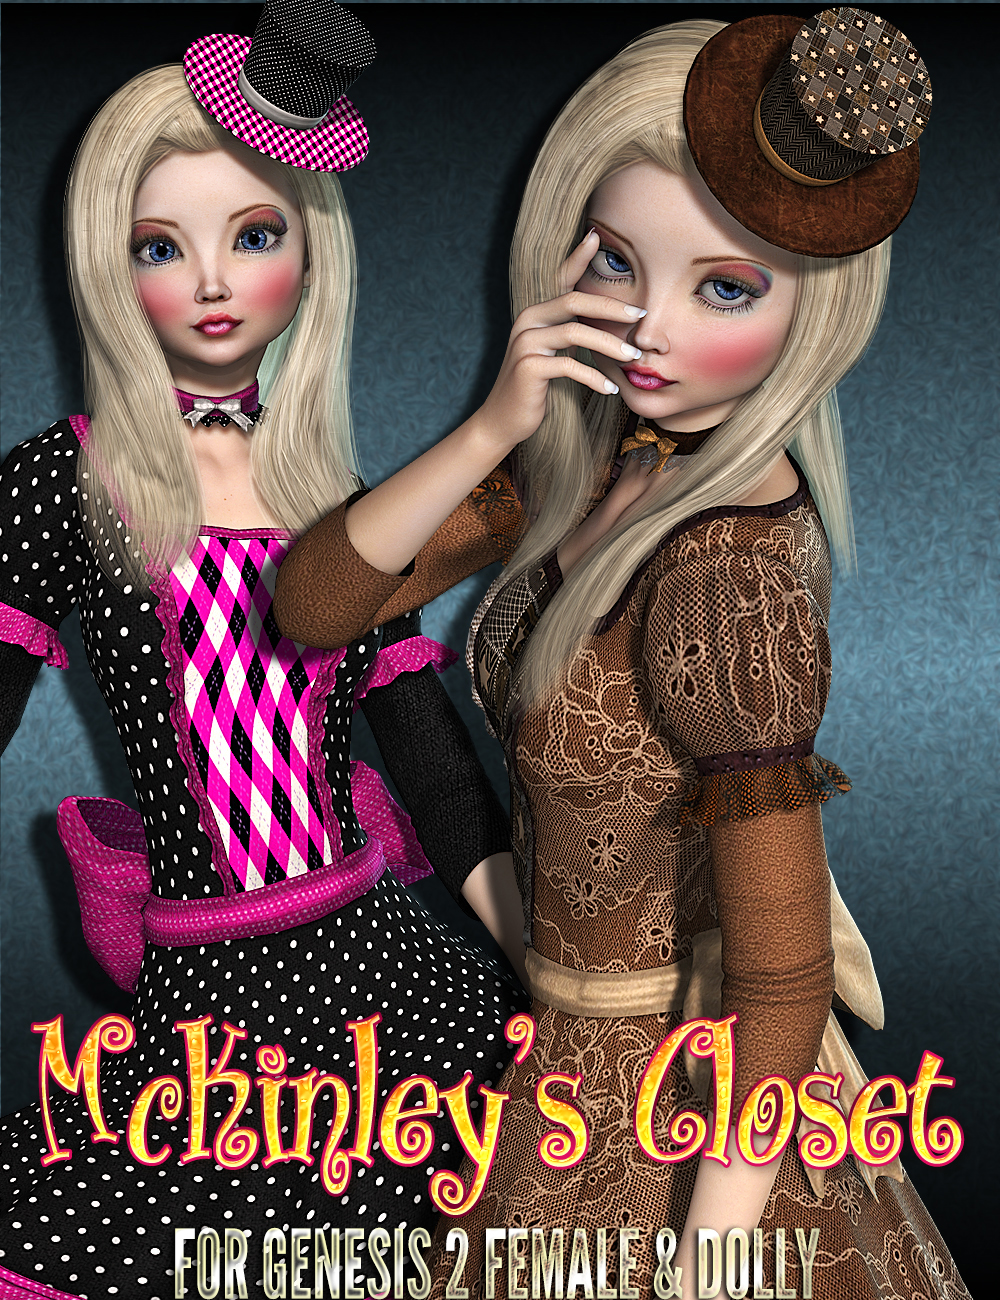 McKinley's Closet Clothing for Genesis 2 And Dolly